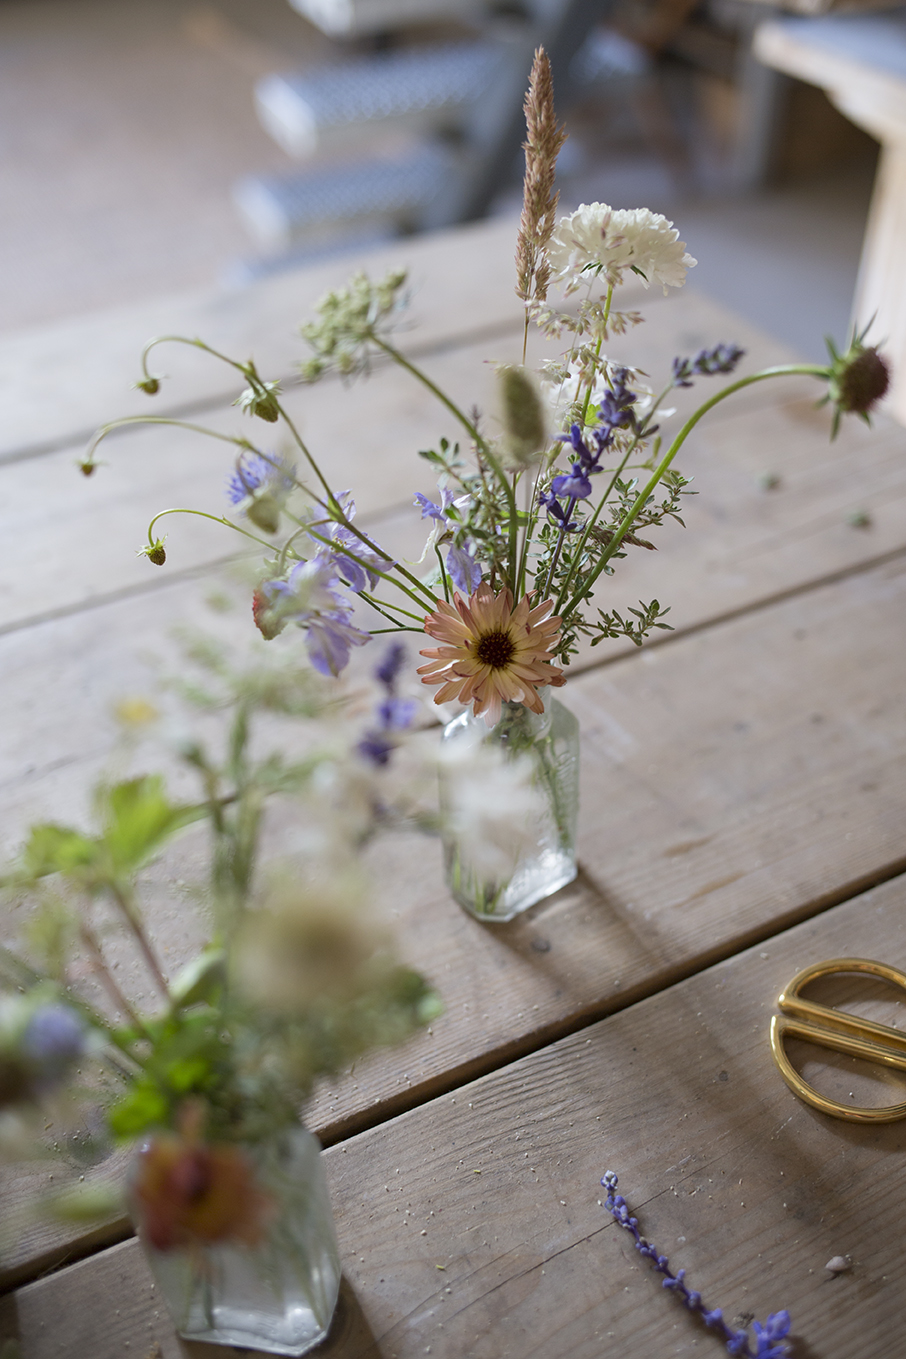 Intricate buttonholes woven with delicate garden flowers, sprigs of fragrant lemon thyme and tiny strawberries